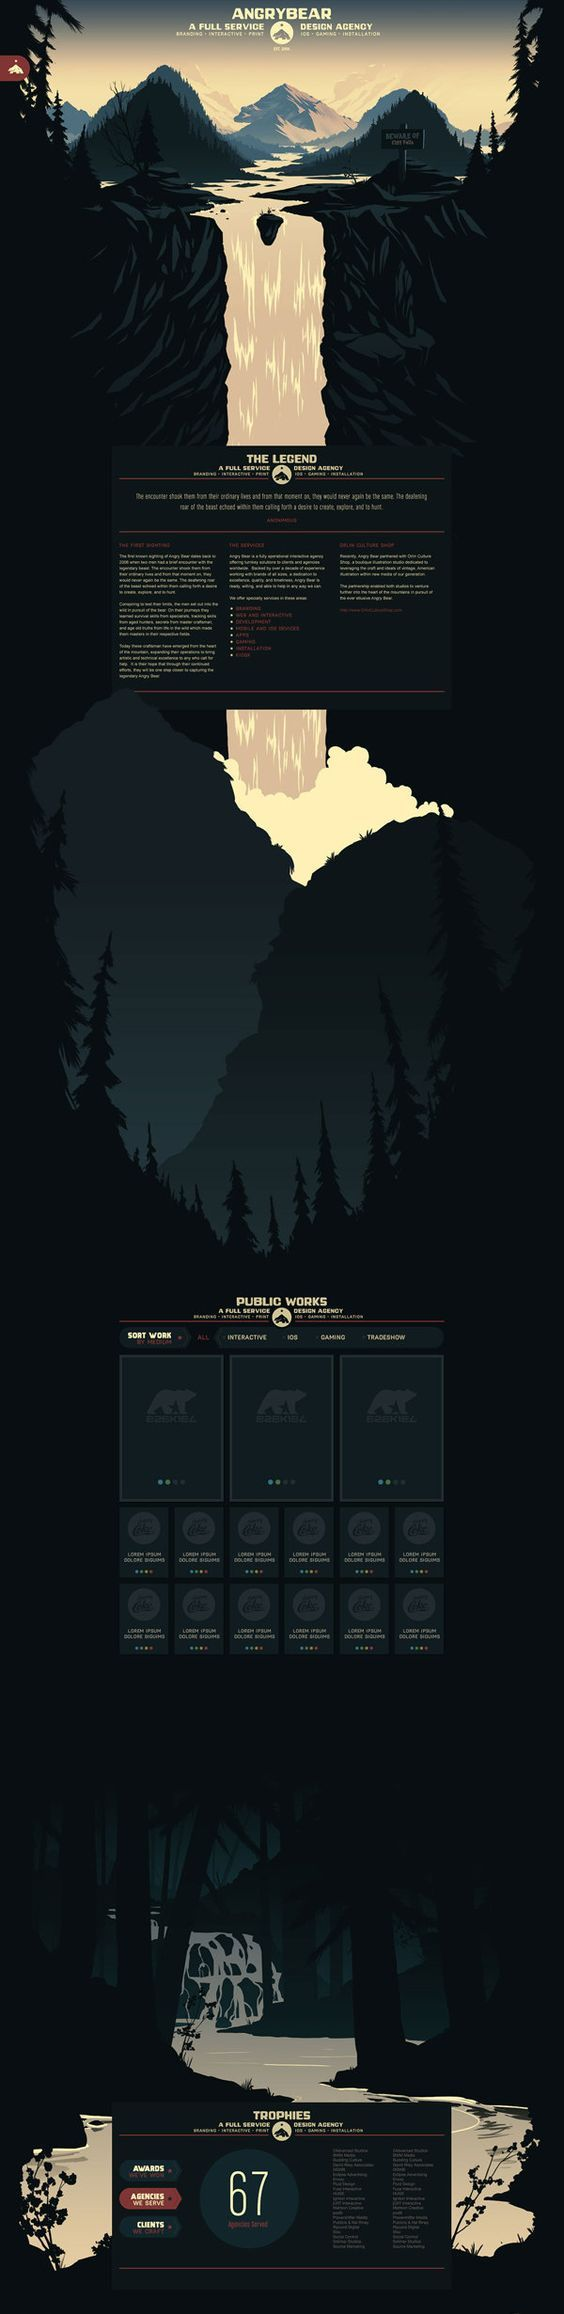 Angry Bear Site Illustration & Design by Brian Miller via Behance - #design #webdesign #illustration: